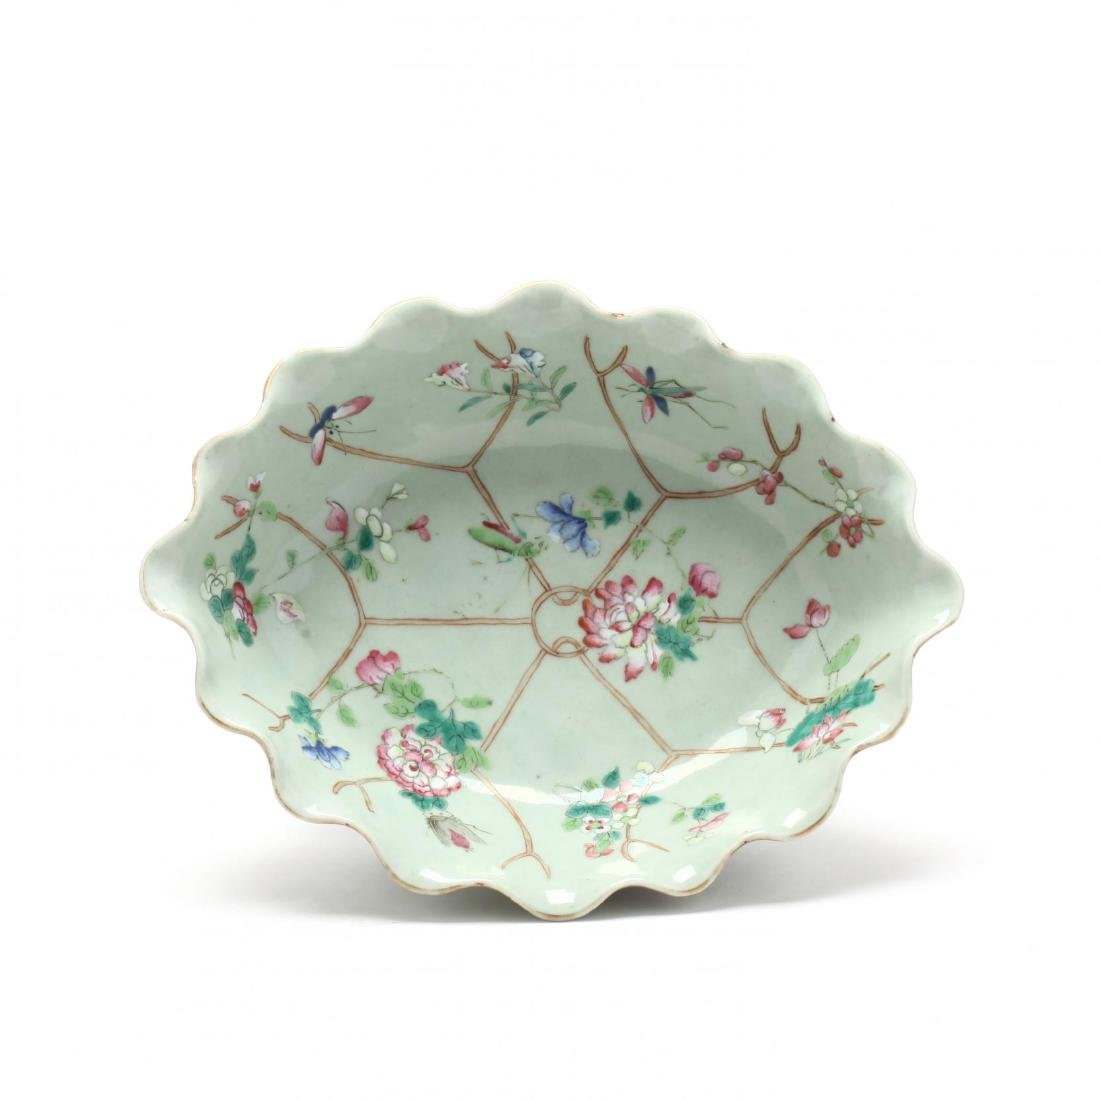 A Group of Chinese Porcelain Tableware - 5